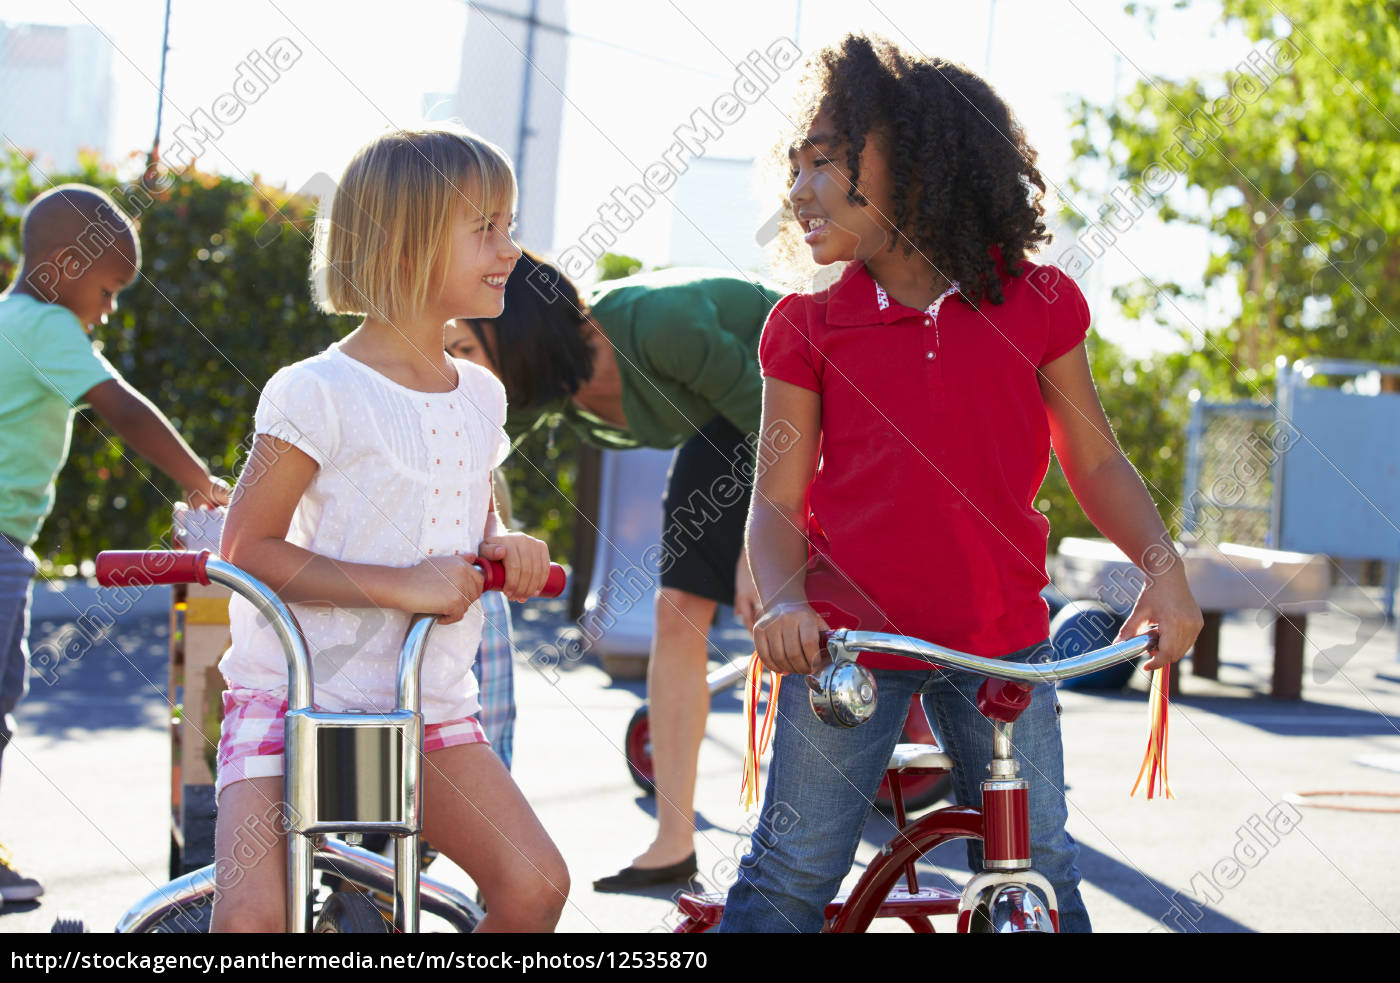 two, girls, riding, tricycles, in, playground - 12535870